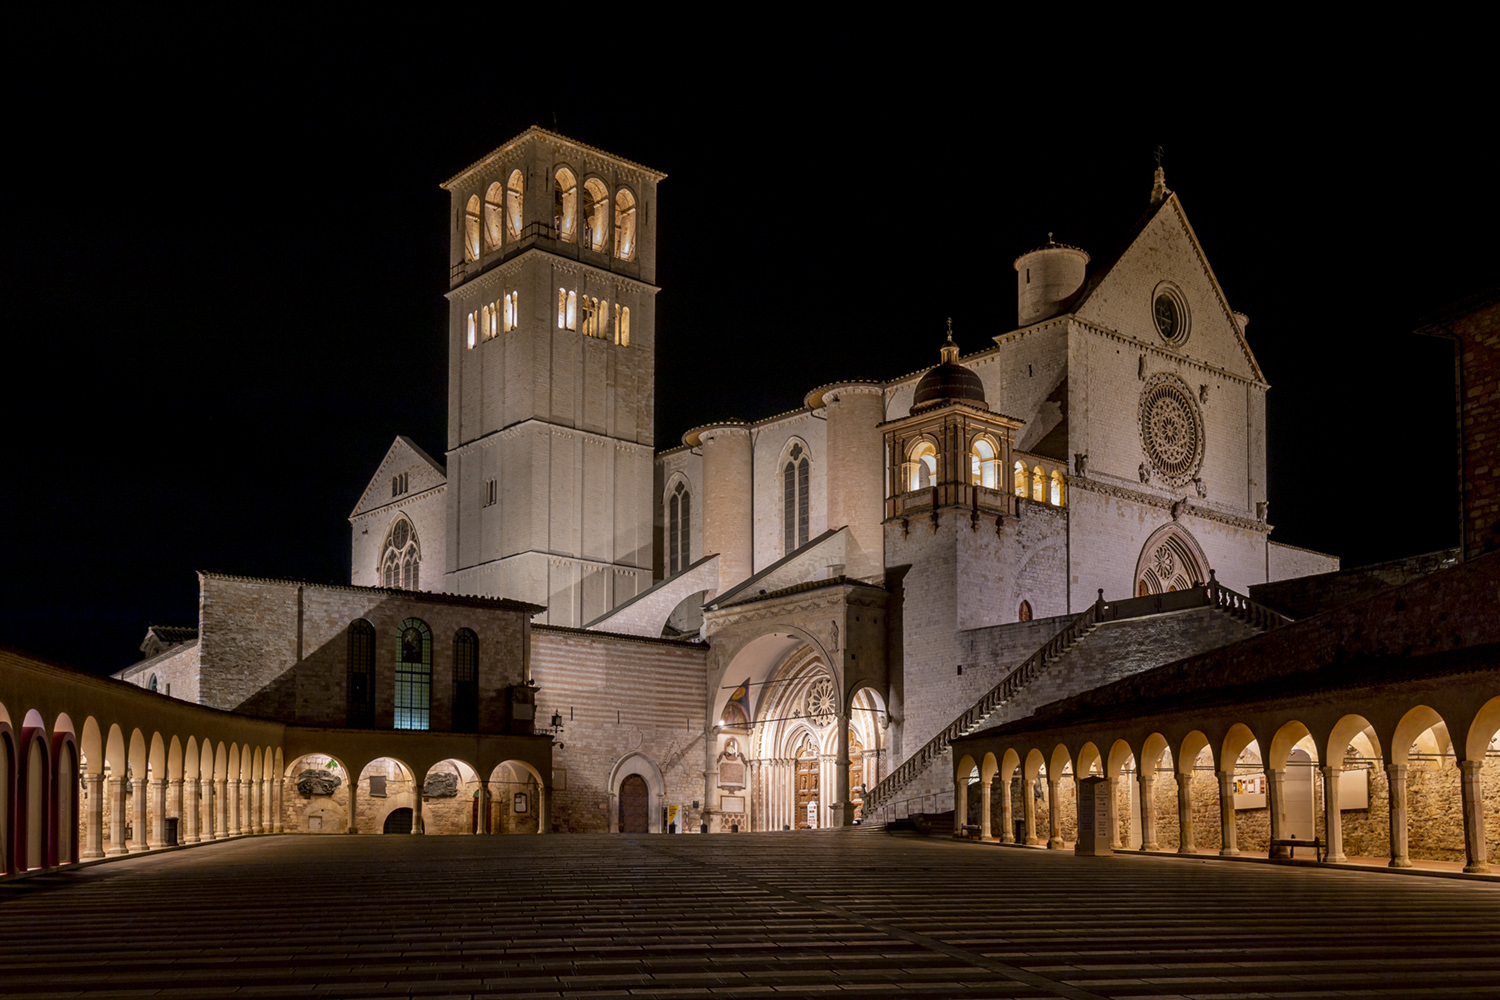 basilica-di-san-francesco-assisi-004